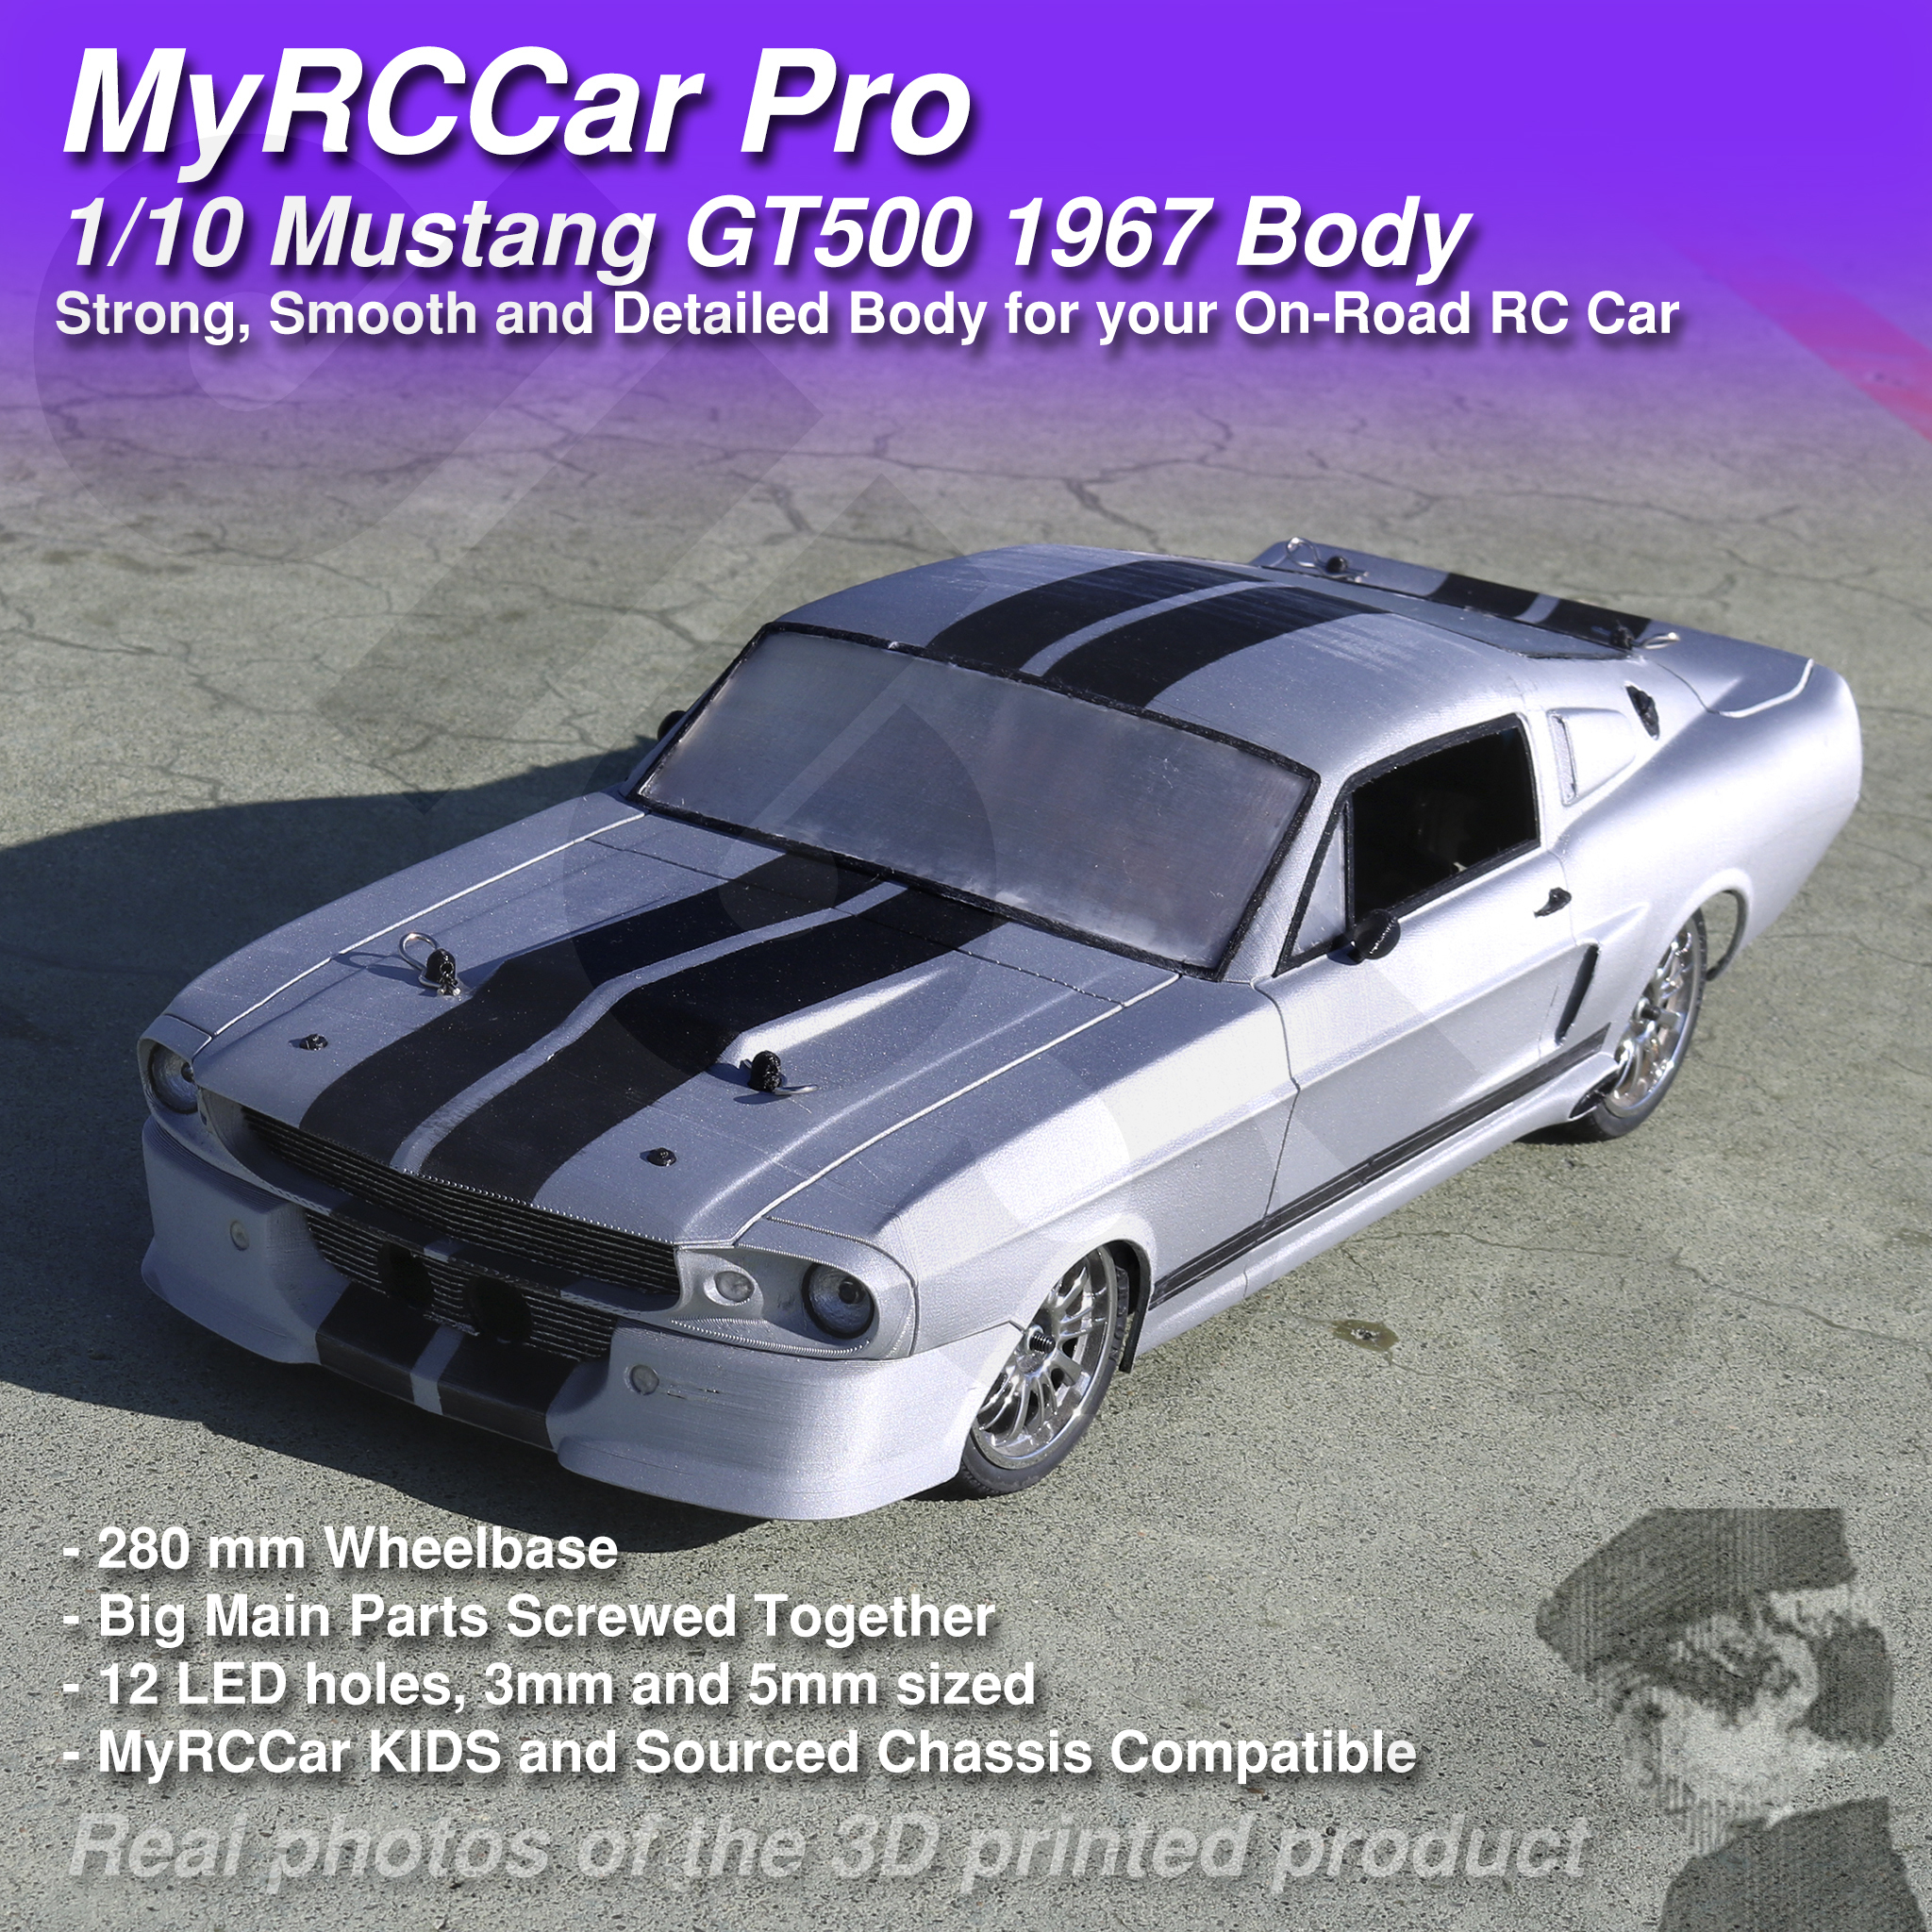 MRCC_Mustie_MAIN_2048x2048_C3Db.jpg Descargar archivo STL MyRCCar Mustang GT500 1967 1/10 On-Road RC car body • Modelo para la impresora 3D, dlb5